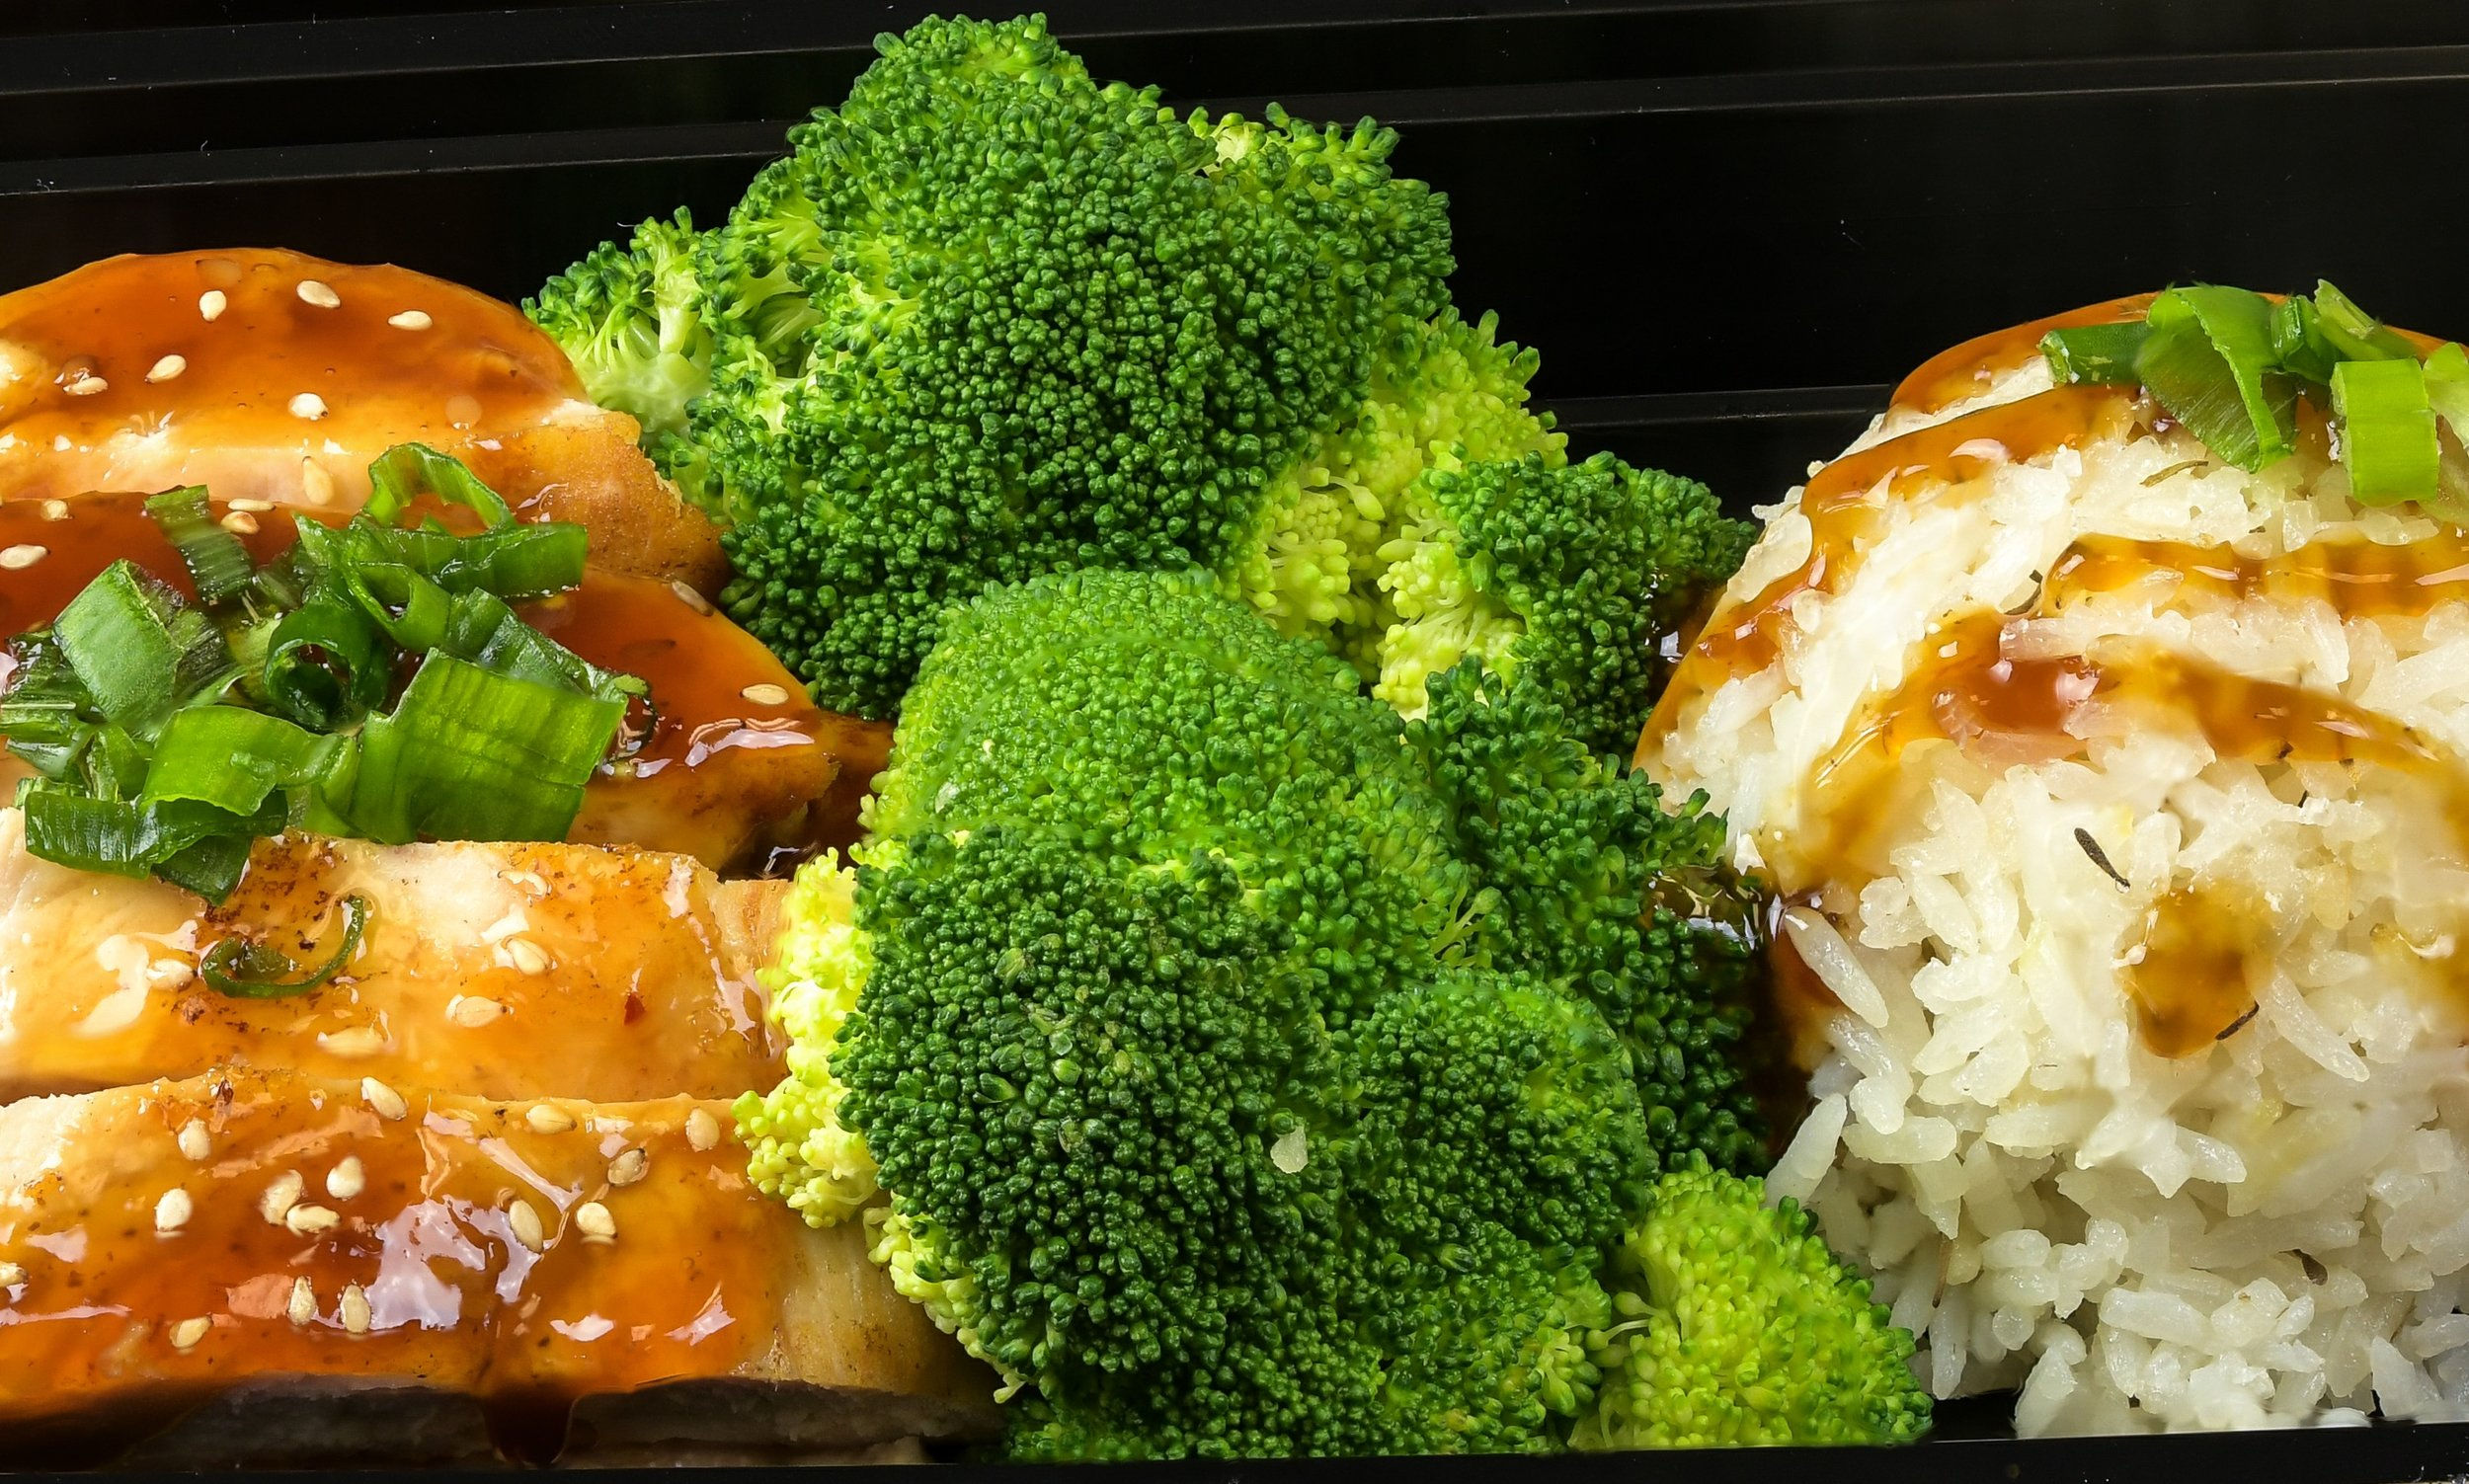 F71 Chicken with Gravy Broccoli Rice  Close Crop 2018-04-16 08-16-28 (B,Radius8,Smoothing1).jpg